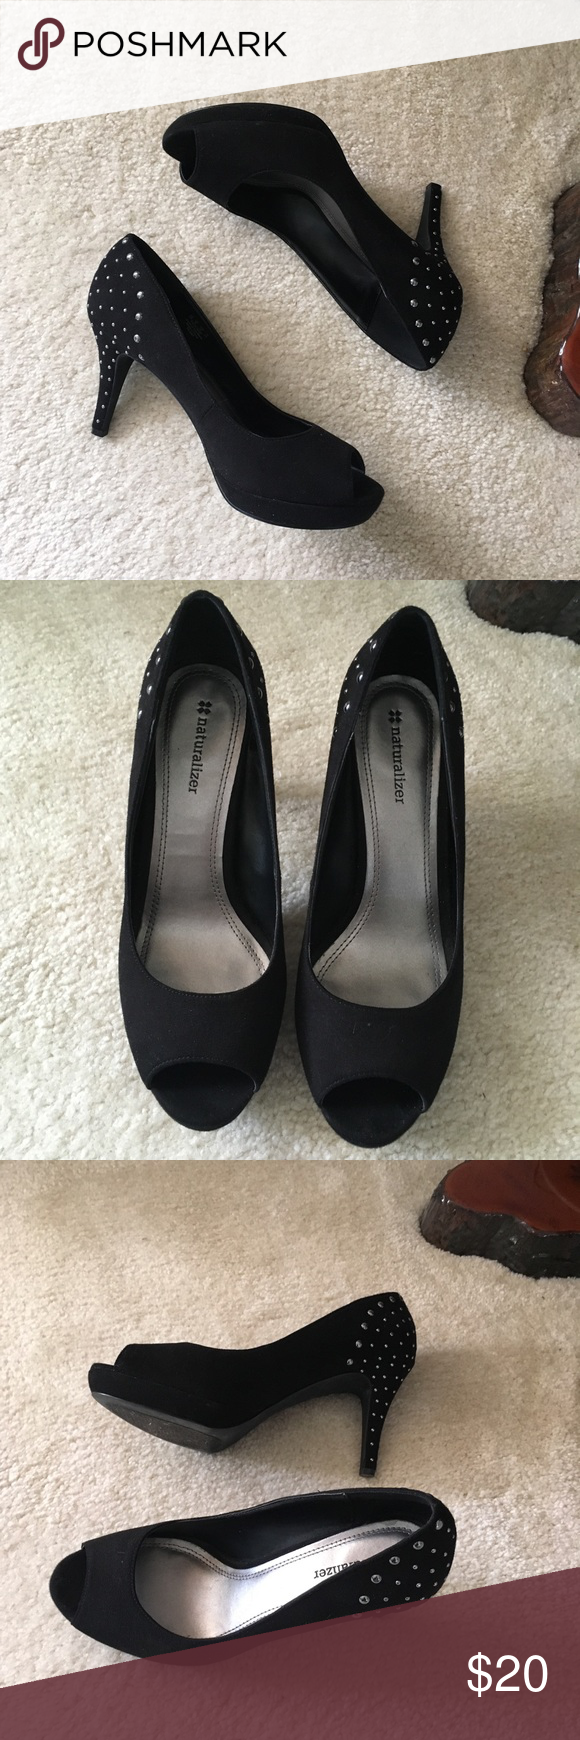 Naturalizer Studded Open Toe Heels Naturalizer Studded Open Toe Heels Worn a few times, still is great condition  Size 8 Naturalizer Shoes Heels